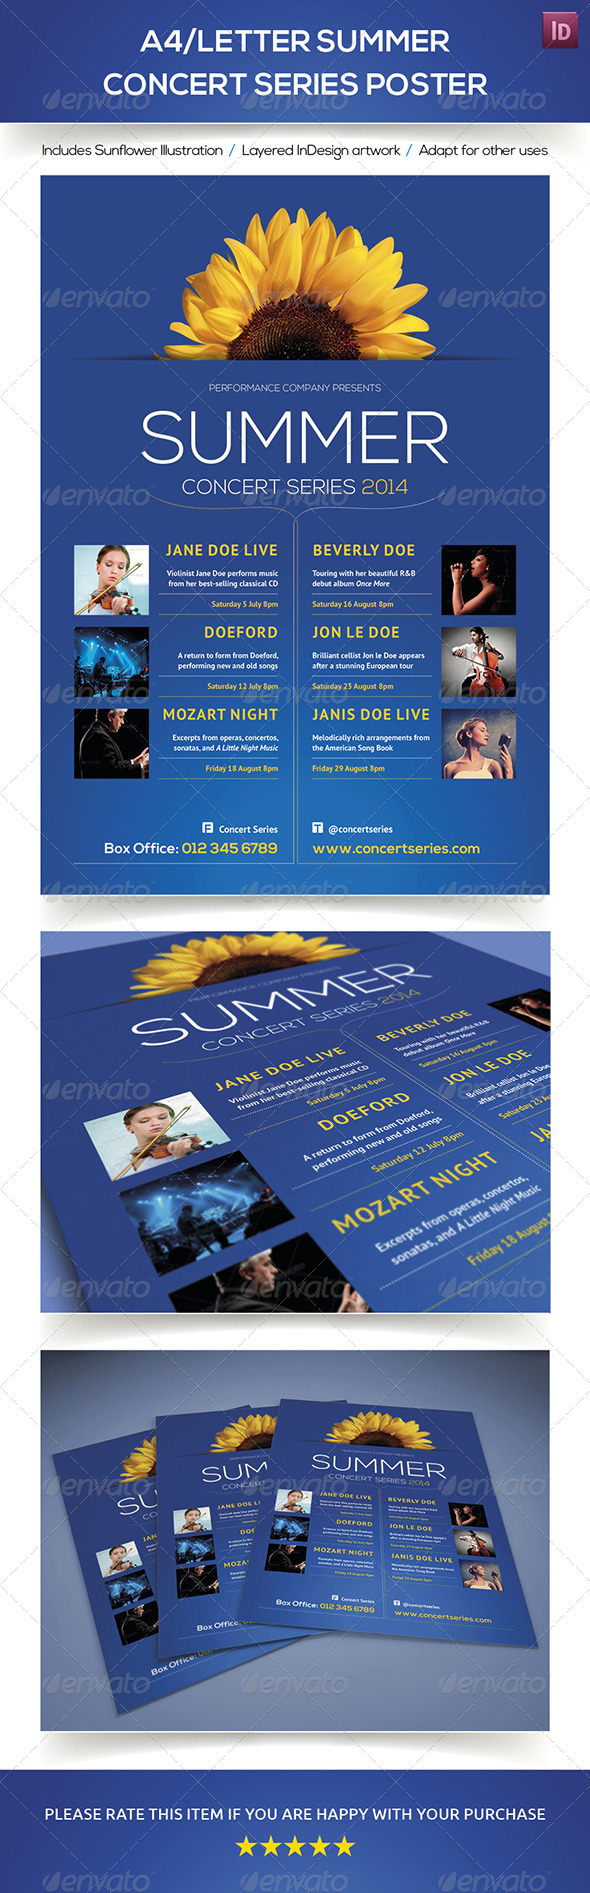 GraphicRiver A4 Letter Summer Concert Series Poster 7827727